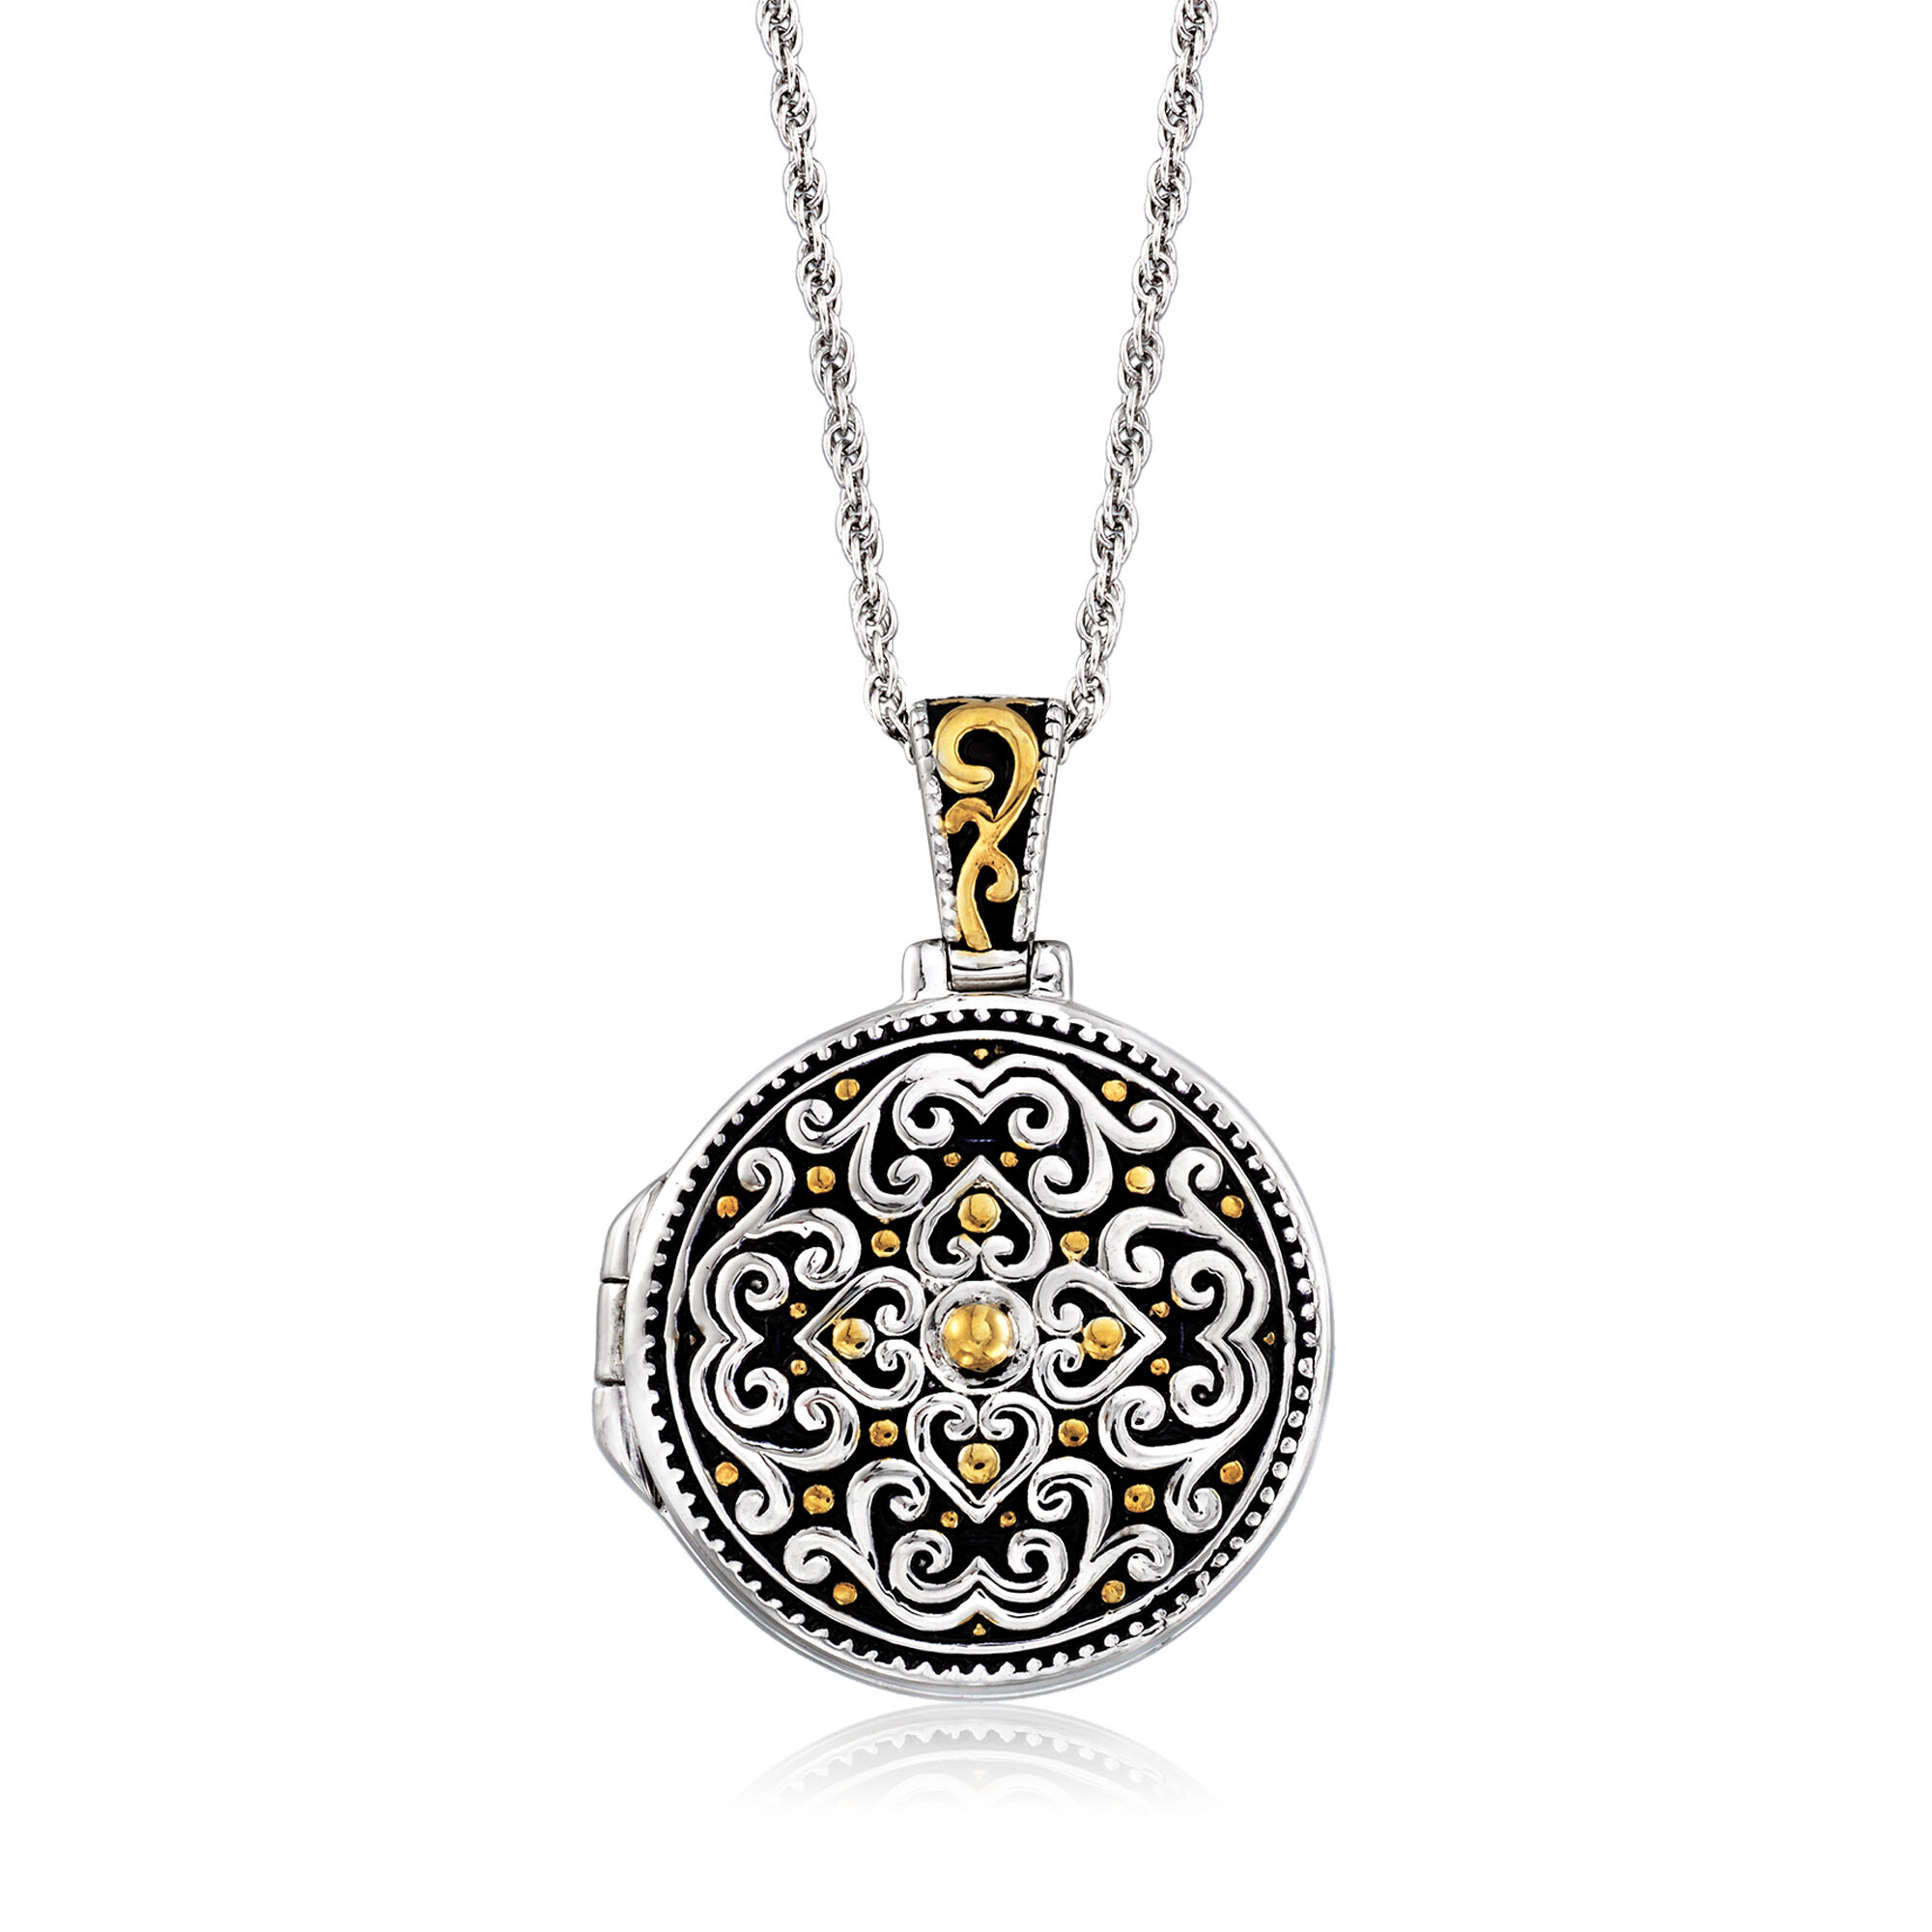 SS BALI TYPE ROUND PENDANT # W//18 SILVER CHAIN Sterling Silver